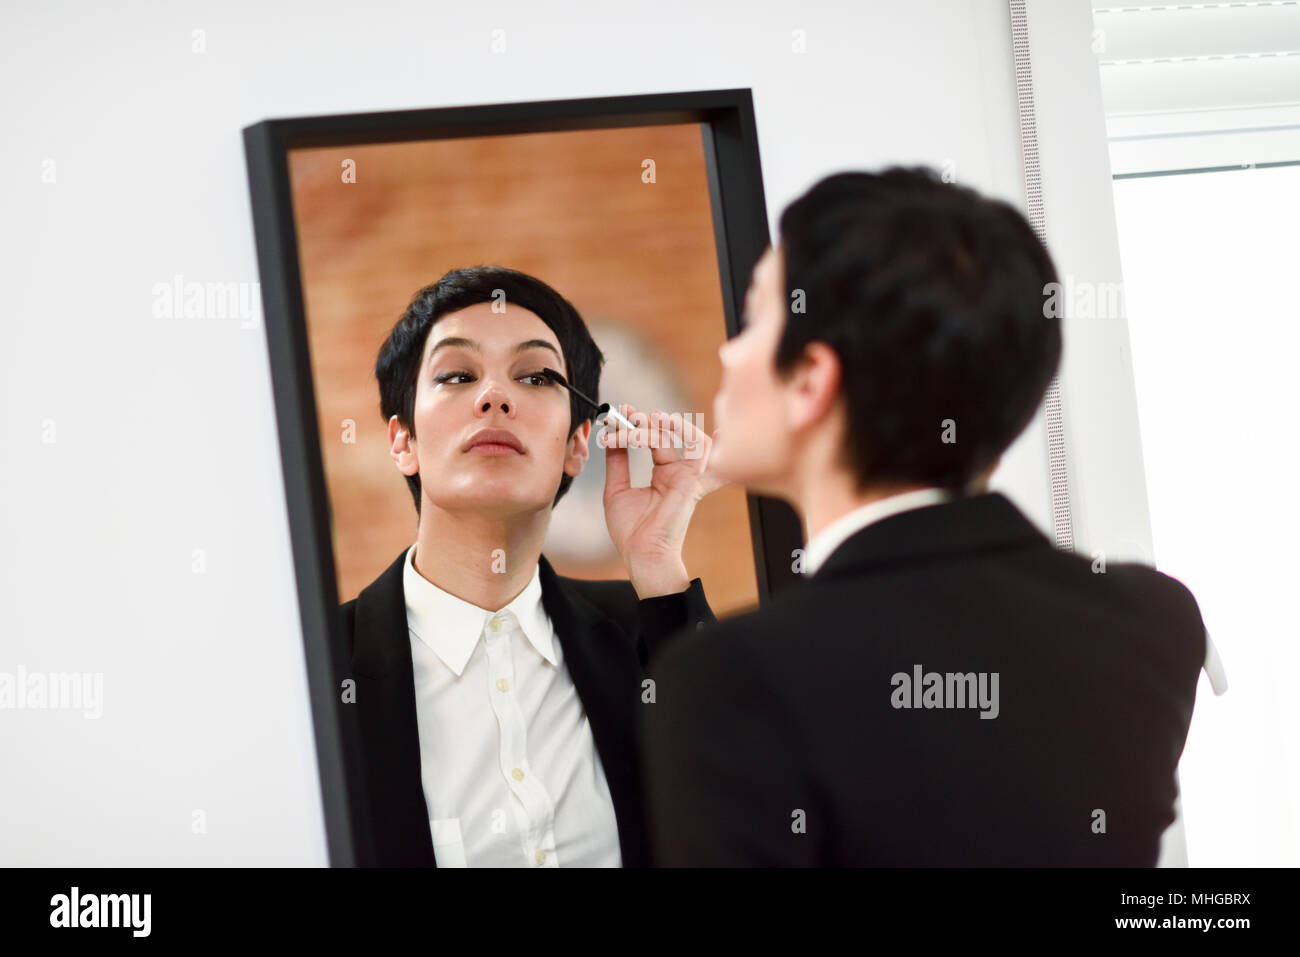 Woman Putting On Makeup In Stock Photos  Woman Putting On -2043